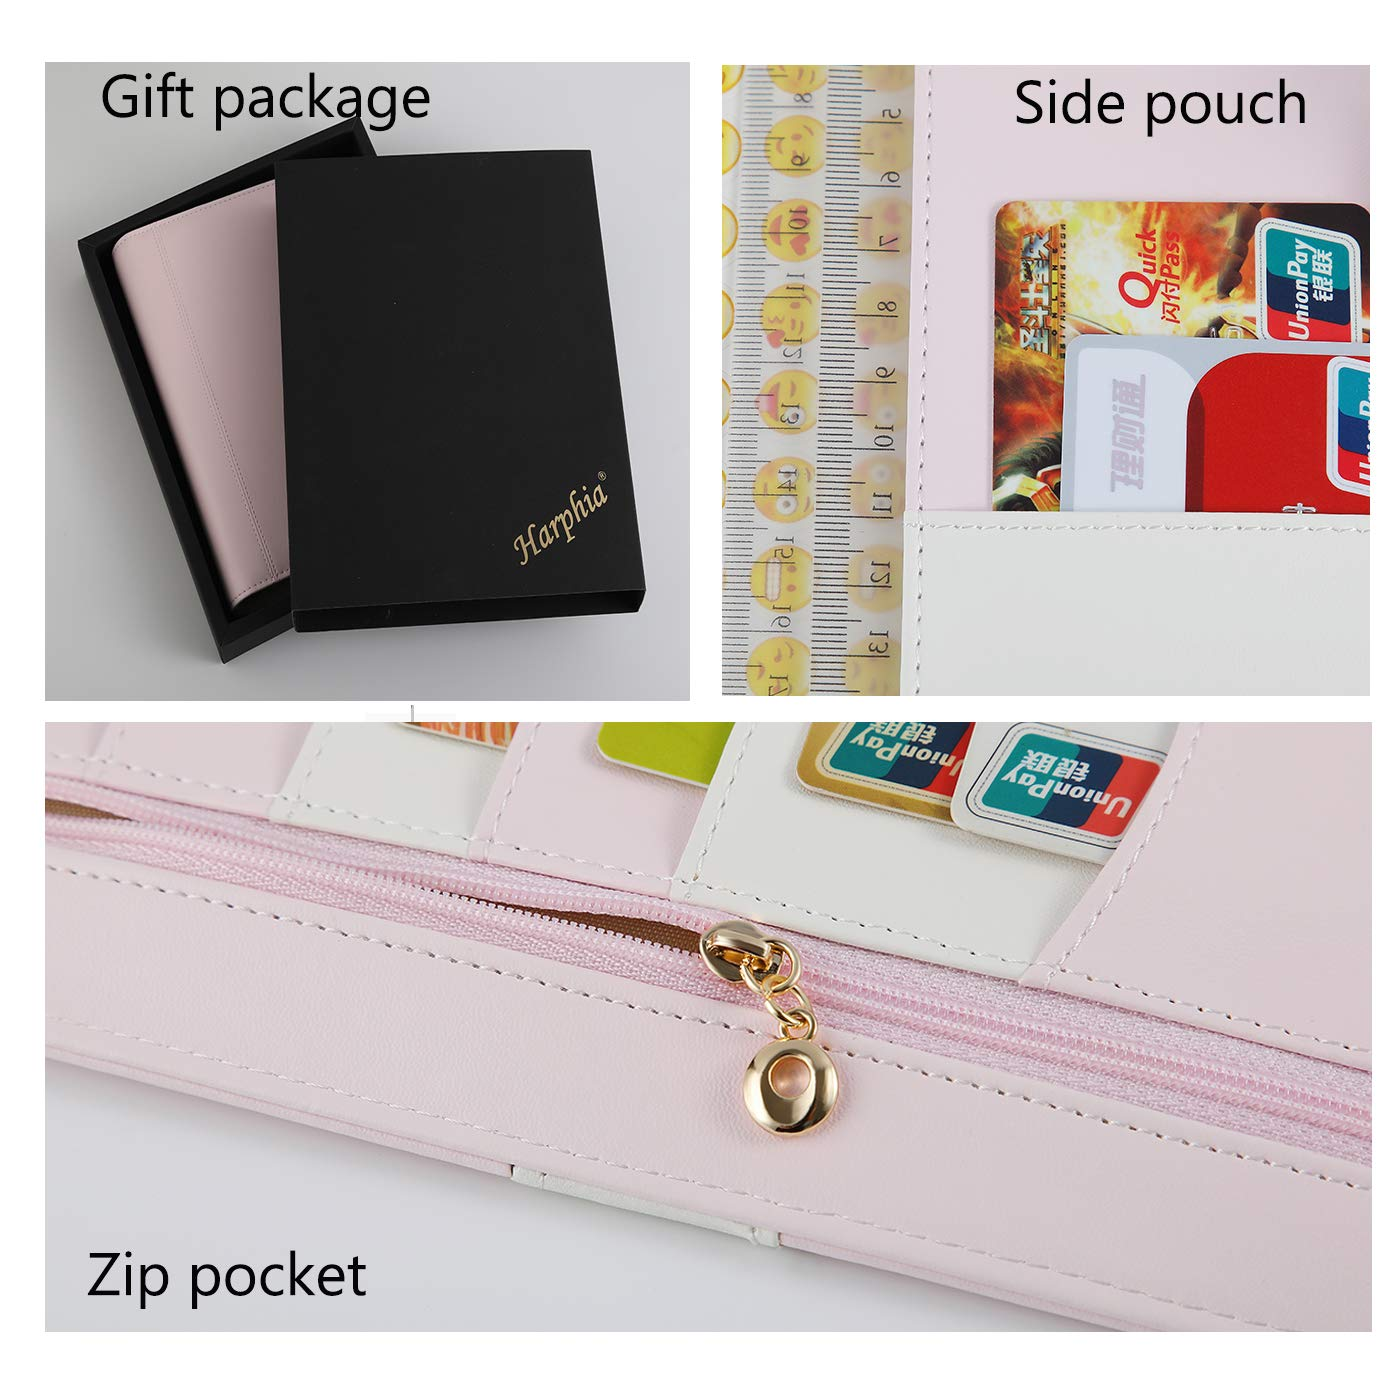 Harphia A5 Planner, A5 Planner Binder 6 Ring Binder softcover PU Personal Organizer with Snap Button Light Pink No Refills Included(A5 9.25 x 7.08)